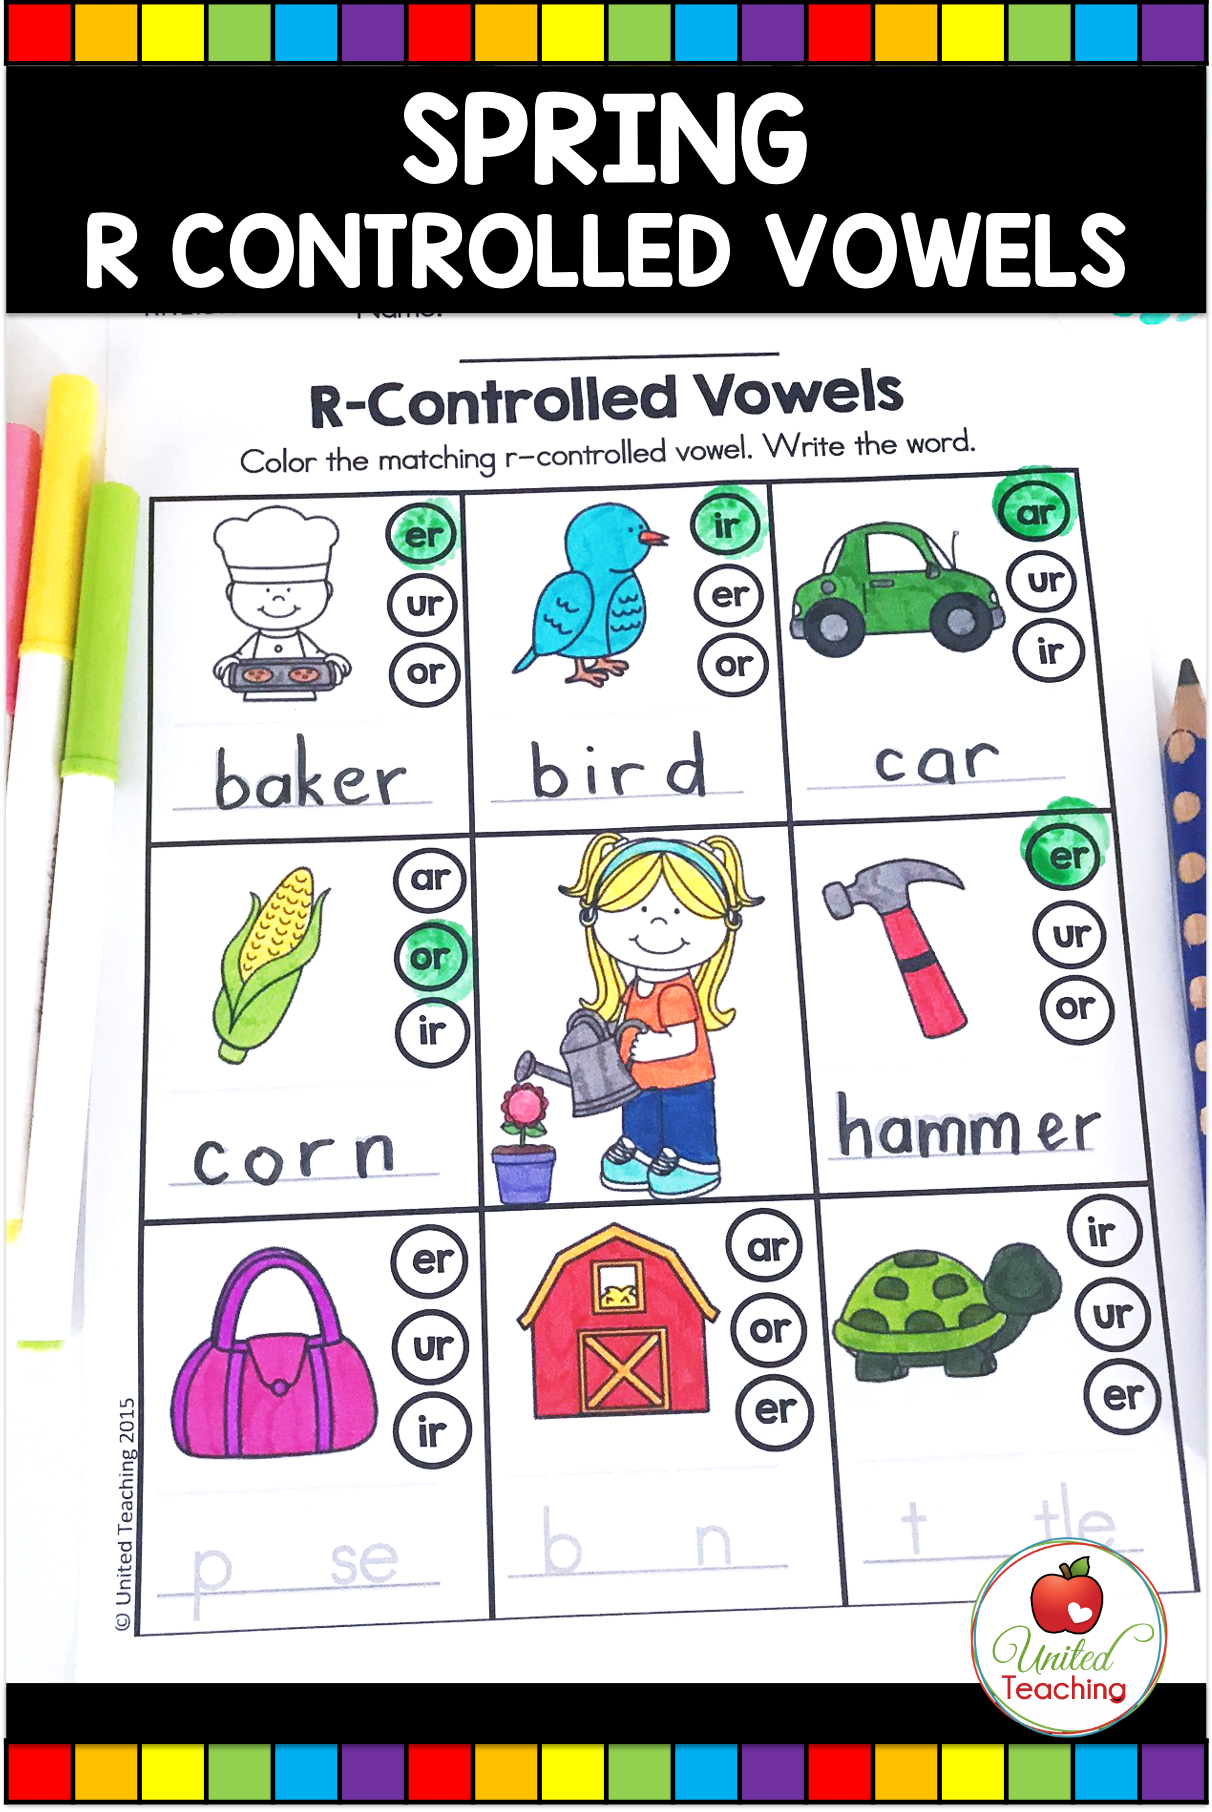 small resolution of Spring Math and Literacy Activities (1st Grade) - United Teaching   R  controlled vowels activities